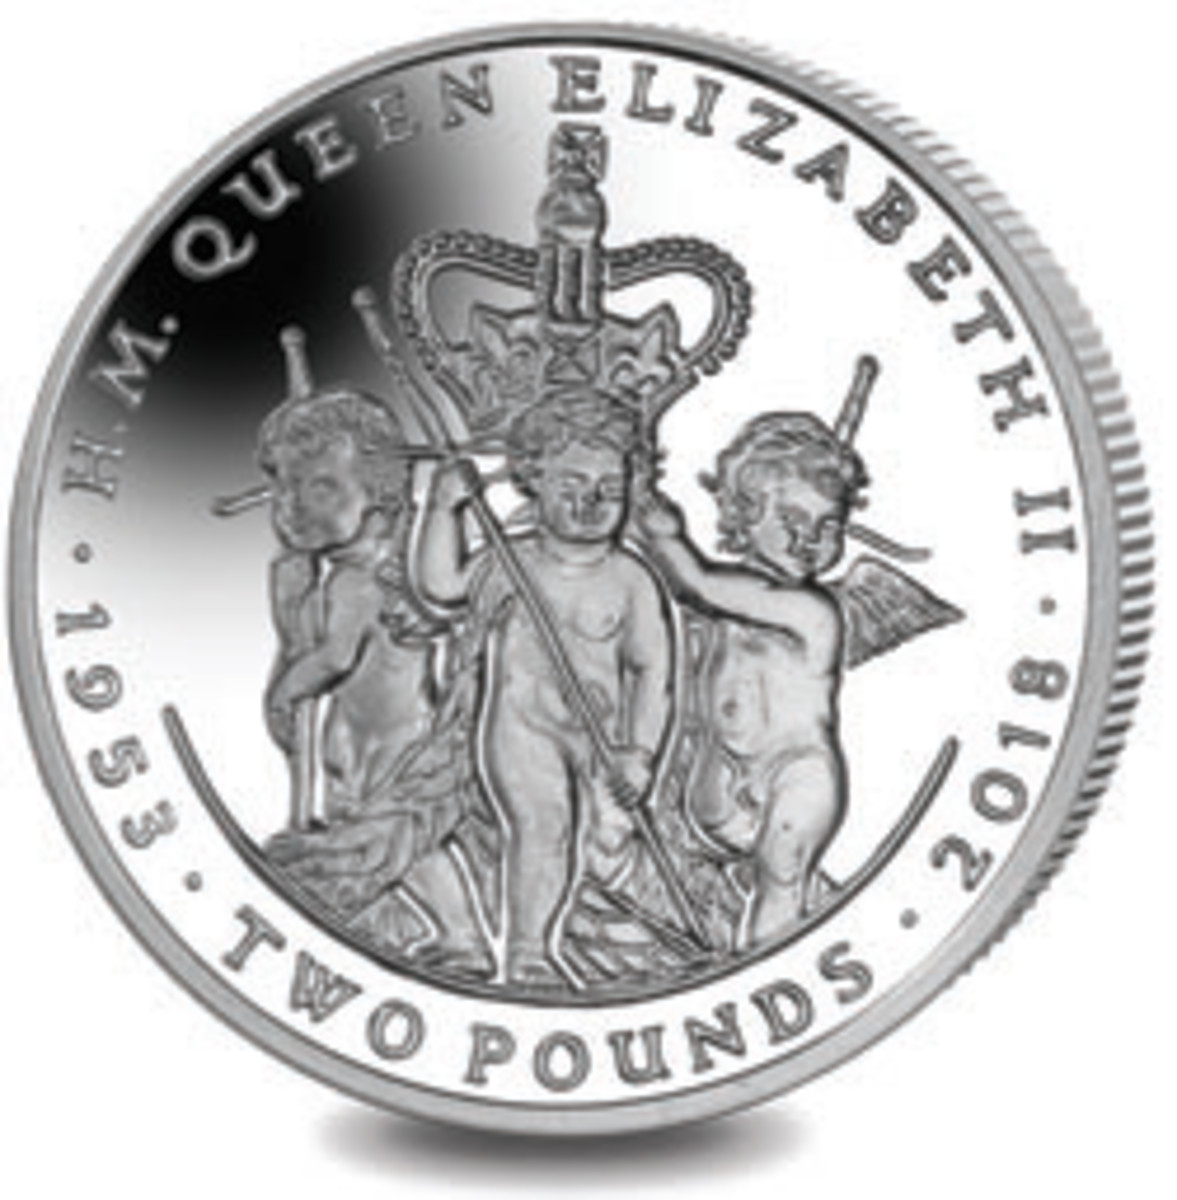 Tribute coin from South Georgia (two pounds). (Image courtesy Pobjoy Mint)